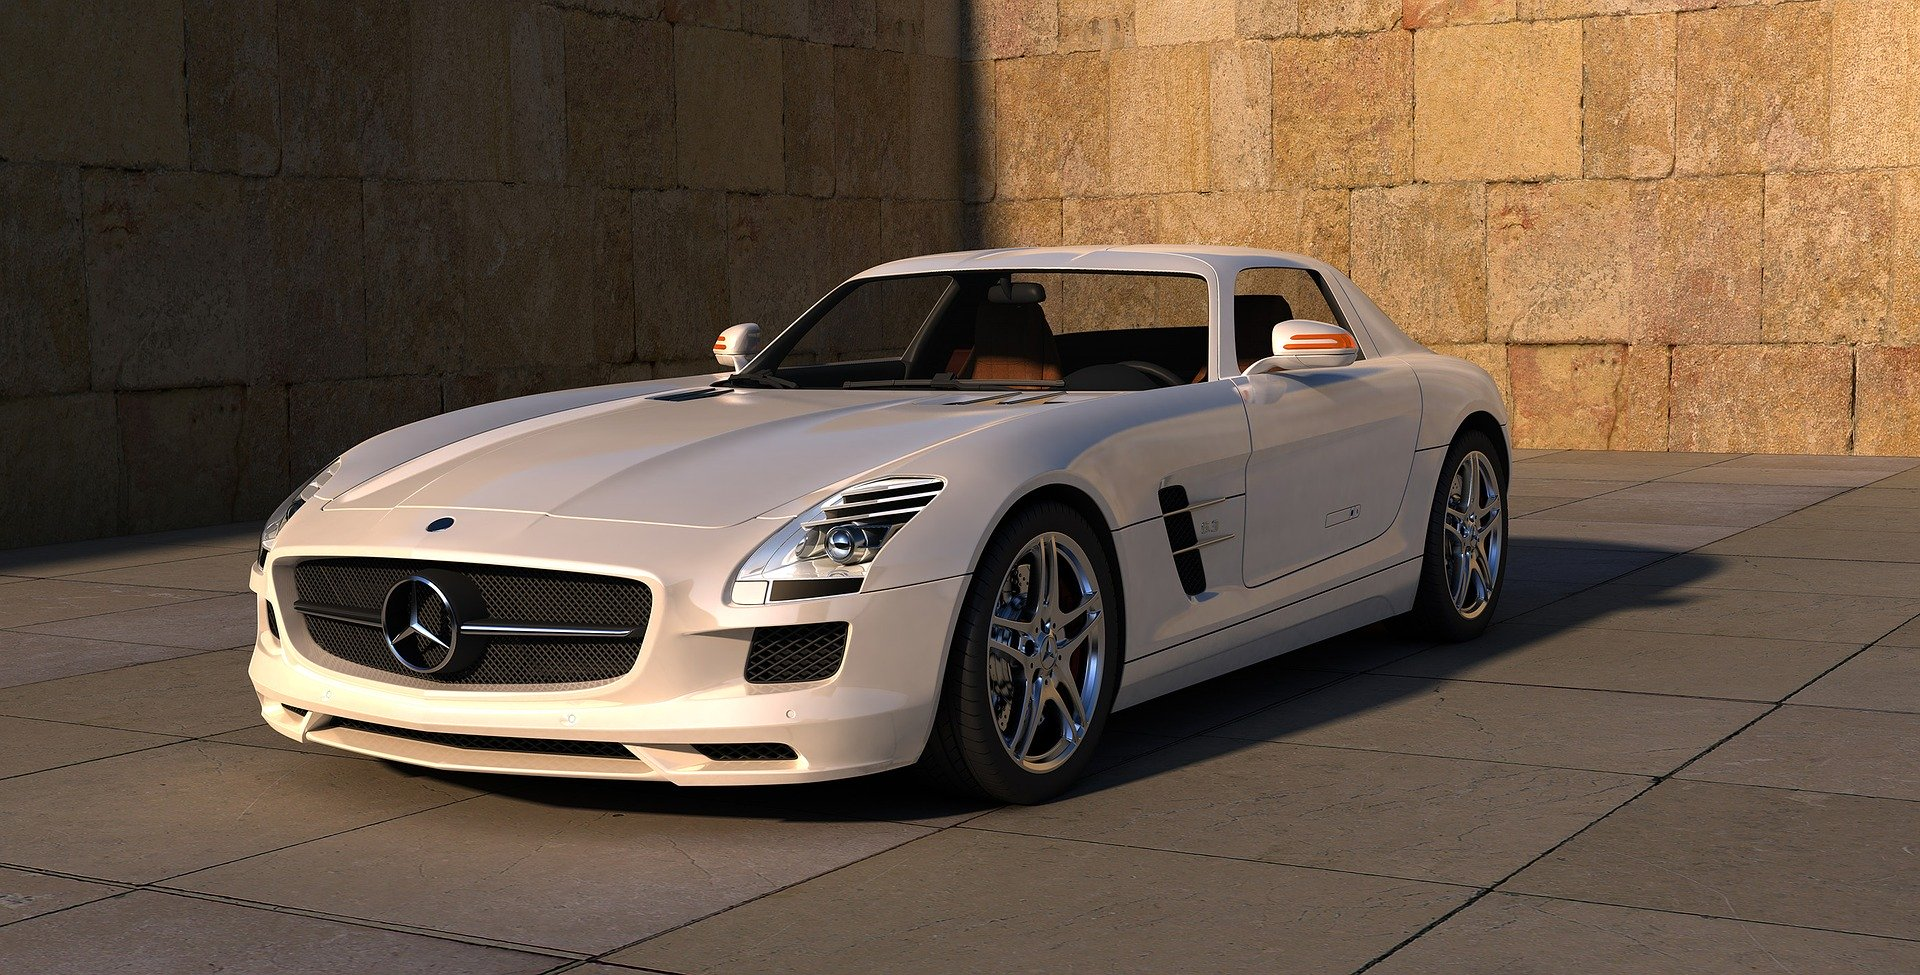 At-silverstone-cars-ltd-barking-buy-affordable-cars